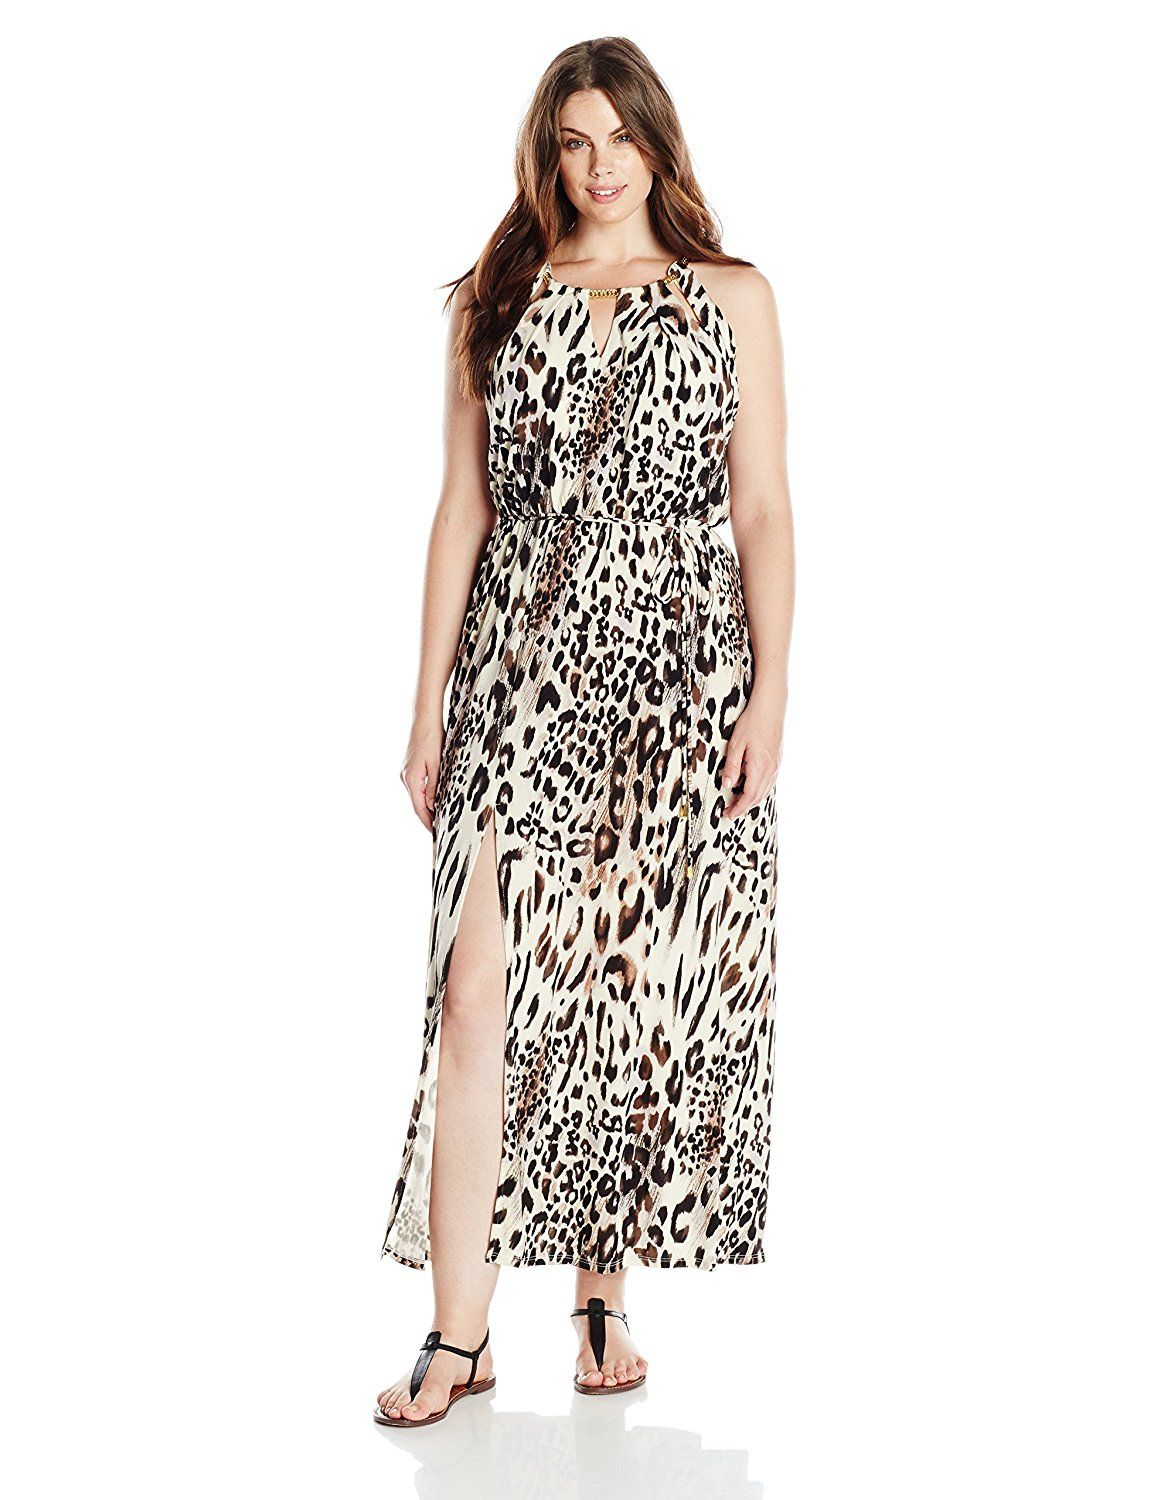 295c3b4c9d Sandra Darren Women s Plus-Size Sleeveless Animal Print Key Hole Maxi Dress      Find out more details by clicking the image   Plus size fashion